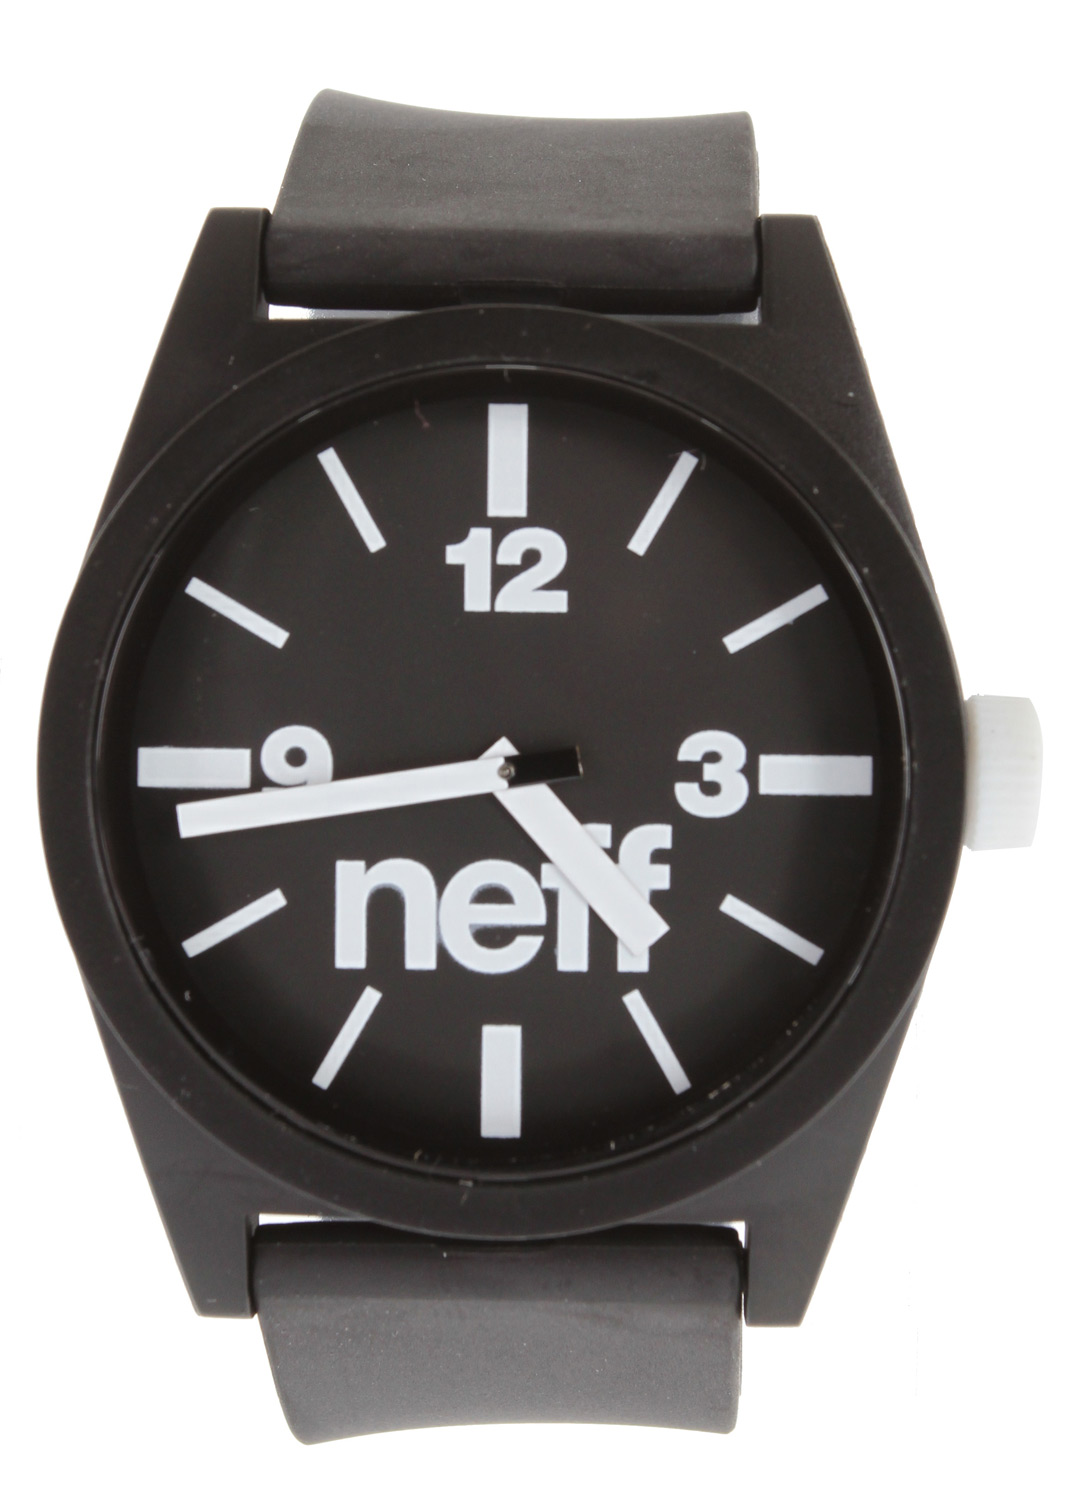 Snowboard The Neff Daily Watch has a clean and simple style you will never tire of. A large face with bold numbers is easy to read under the influence. The polyurethane band keeps things lightweight and the stainless steel back stands up against harsh impacts.Key Features of the Neff Daily Watch: XL display Smooth polyurethane strap 4cm diameter case Case made from protective ABS material Polyurethane adjustable strap One size fits all ABS stainless steel reinforced back 5 ATM water resistant - $30.00